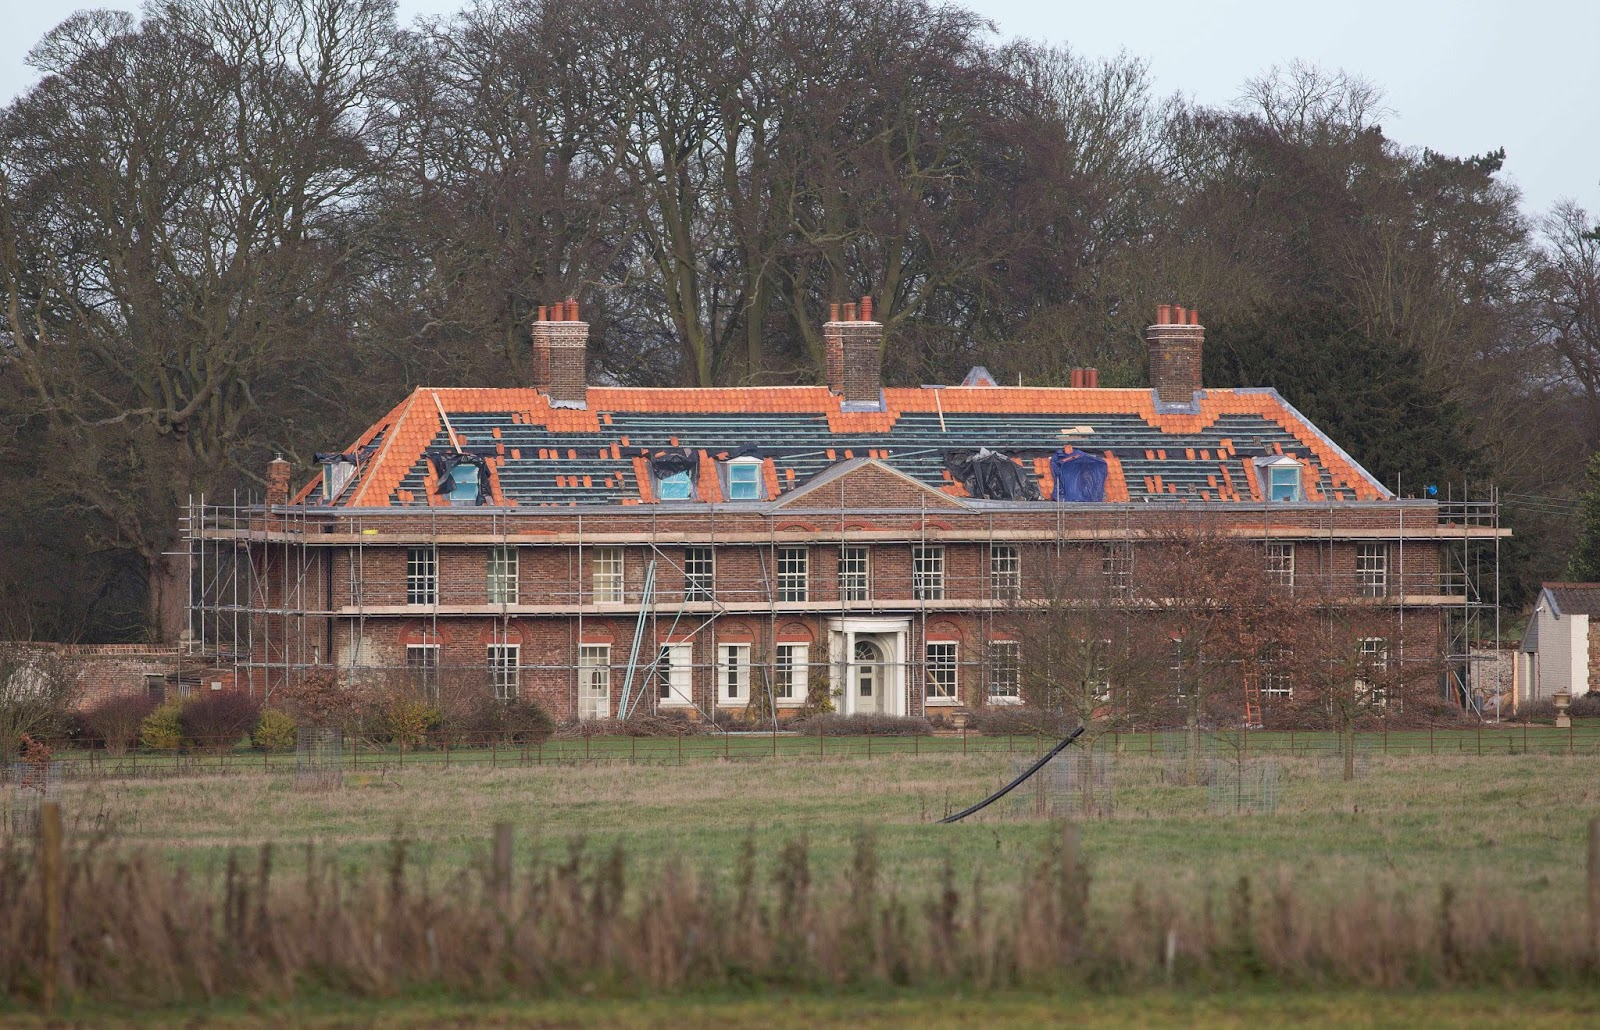 Anmer Hall Undergoing Renovations Last Year Splashnews